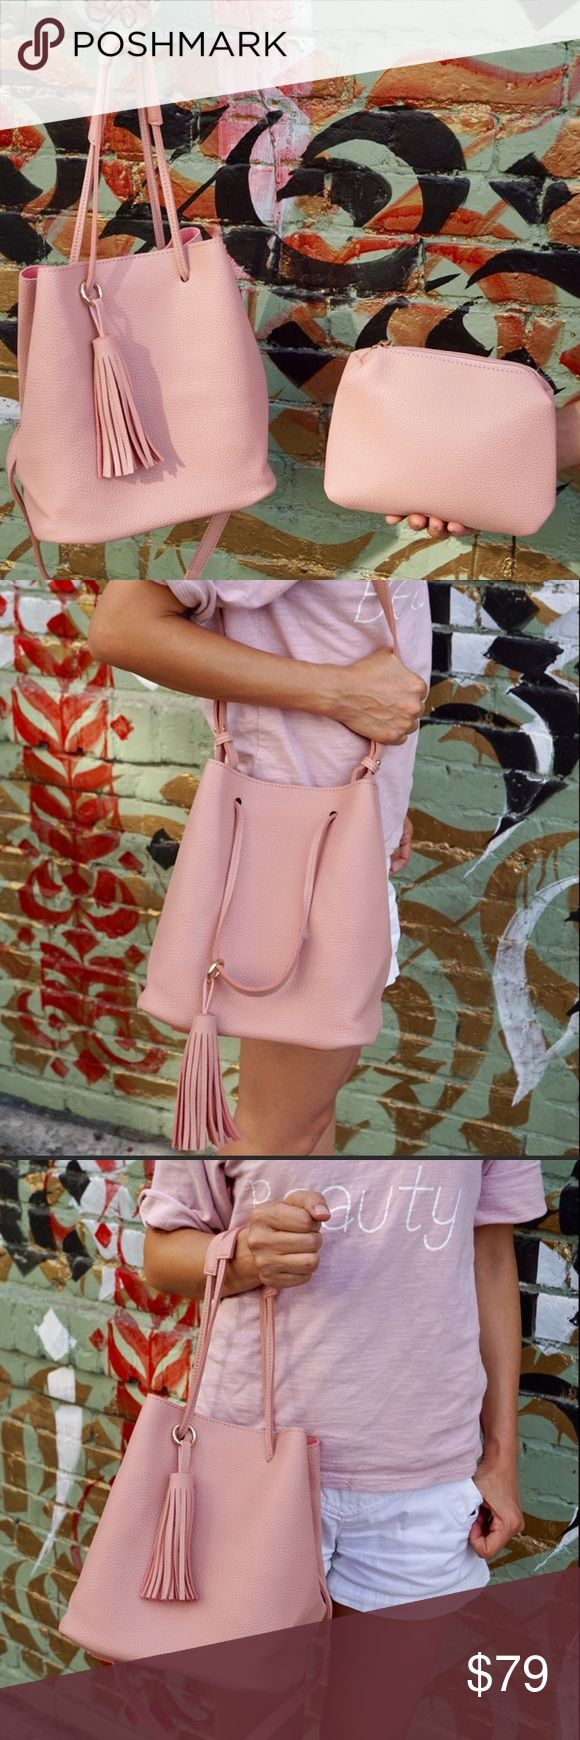 🎉Vegan Leather Blush Shoulder Bucket Bag See last picture for detailed description. Fabulous blush the new neutral color. Reasonable offers will be considered. Pink Haley Bags Shoulder Bags